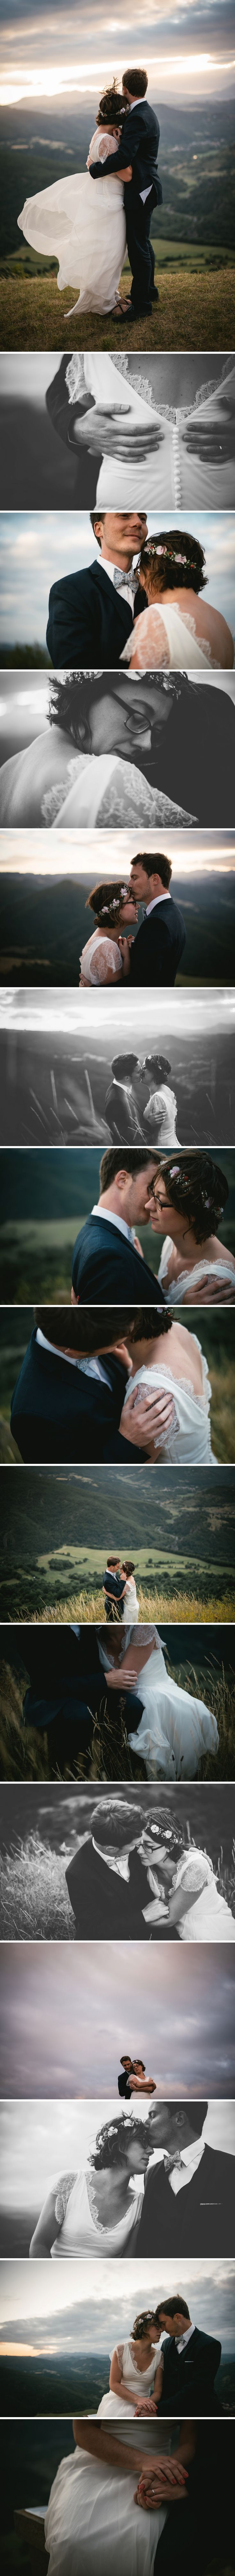 A very windy trash the dress session on top of a French mountain - Zephyr & Luna photography